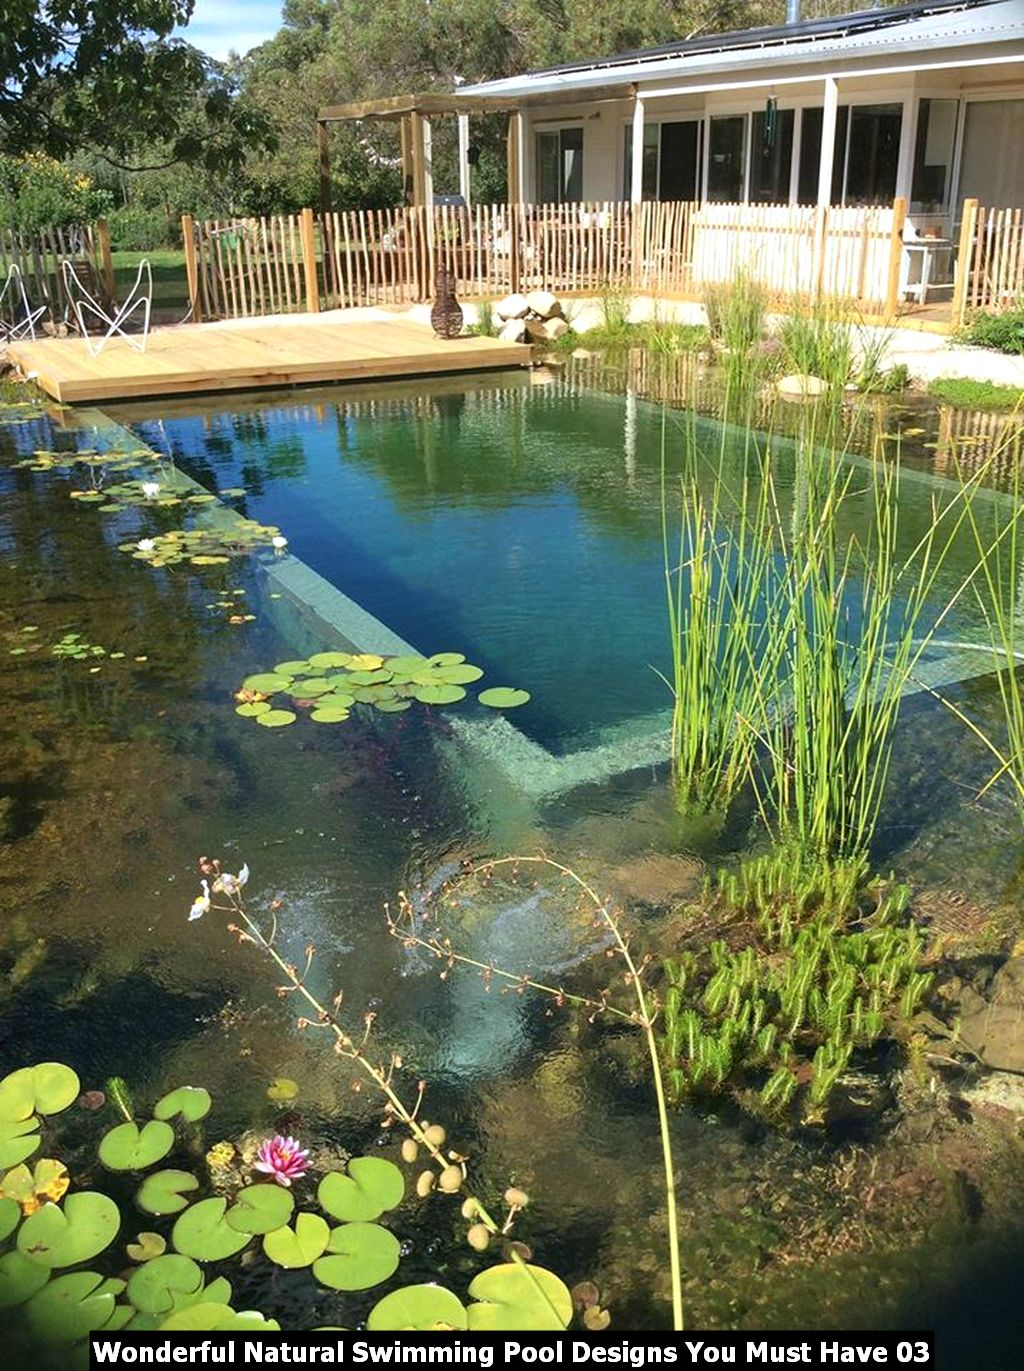 Wonderful Natural Swimming Pool Designs You Must Have 03